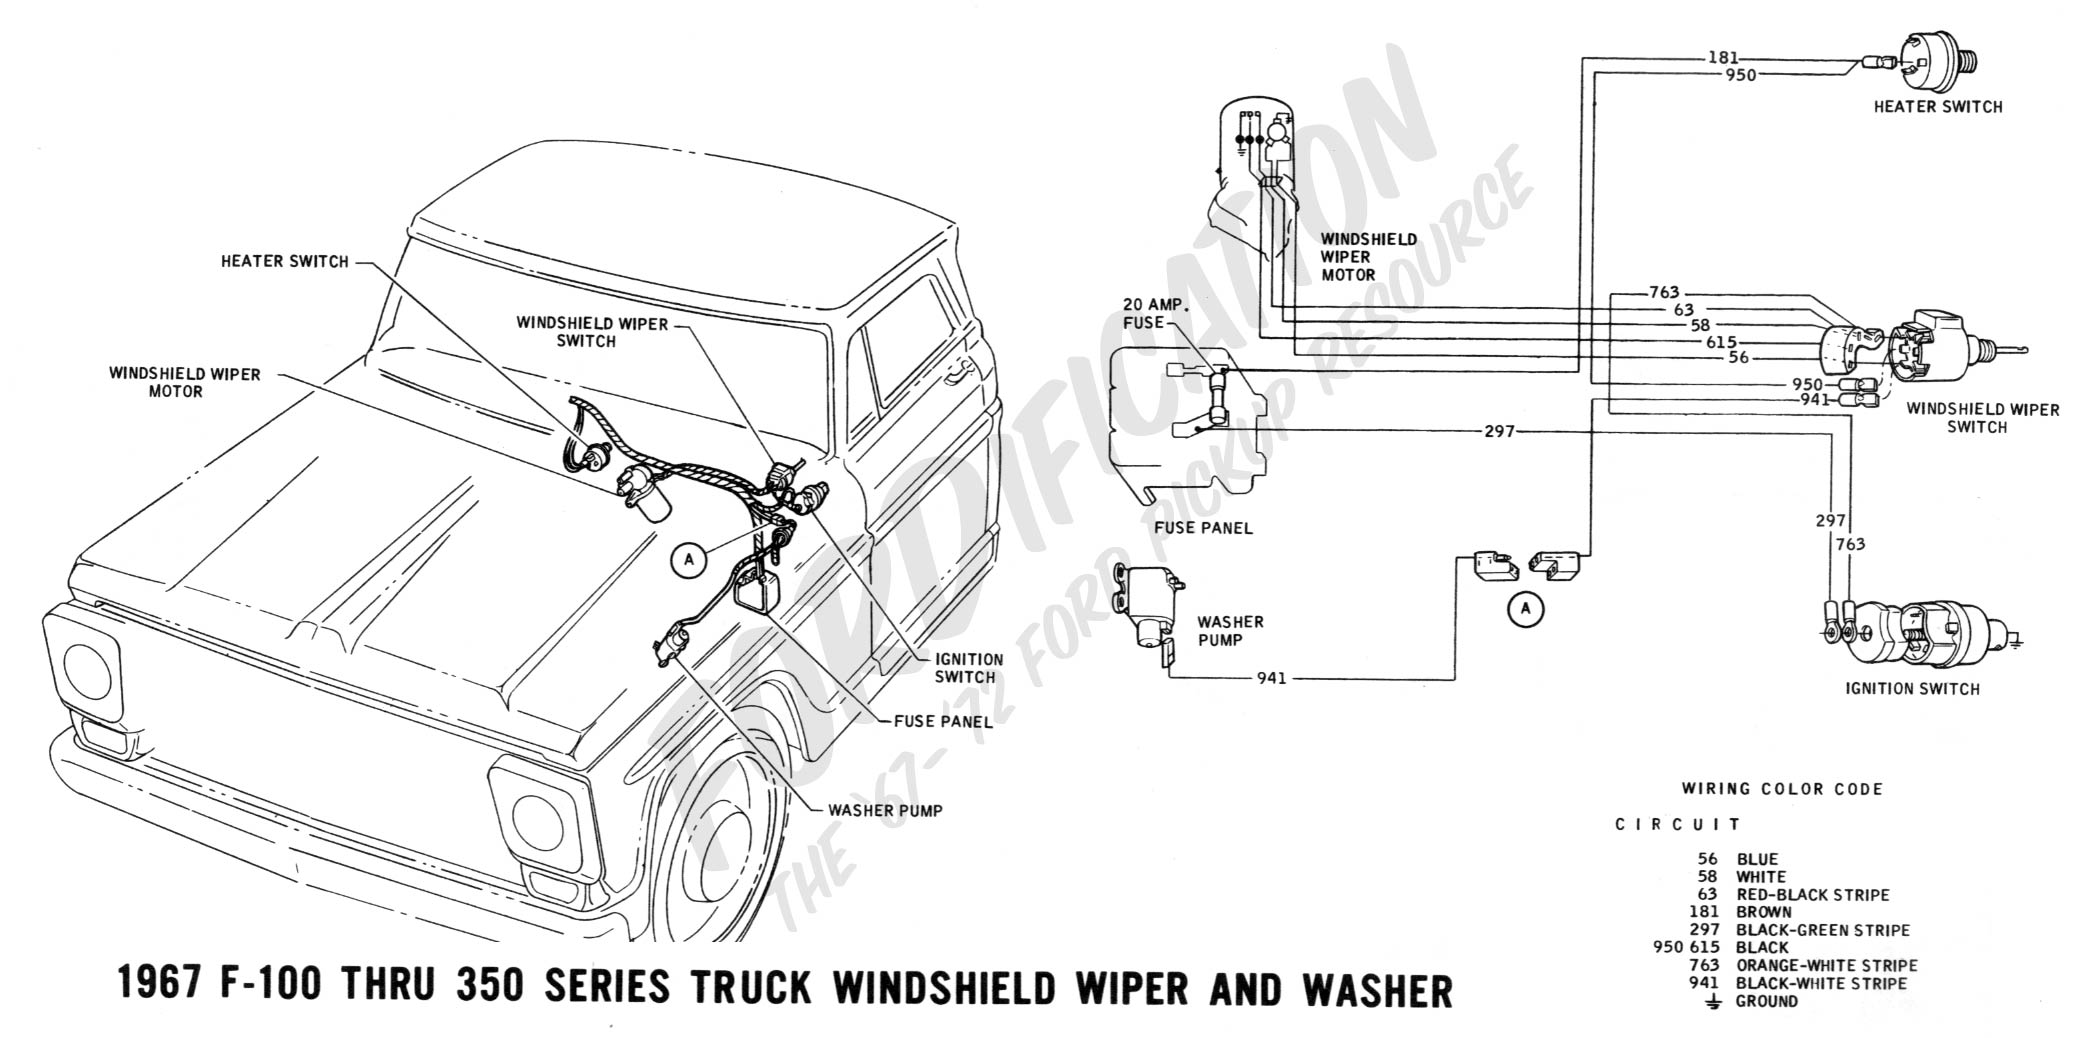 1976 Ford F 150 Engine Diagram Simple Guide About Wiring 1966 Mustang Electrical 250 Schematics Auto Rh Doesitsuit Me